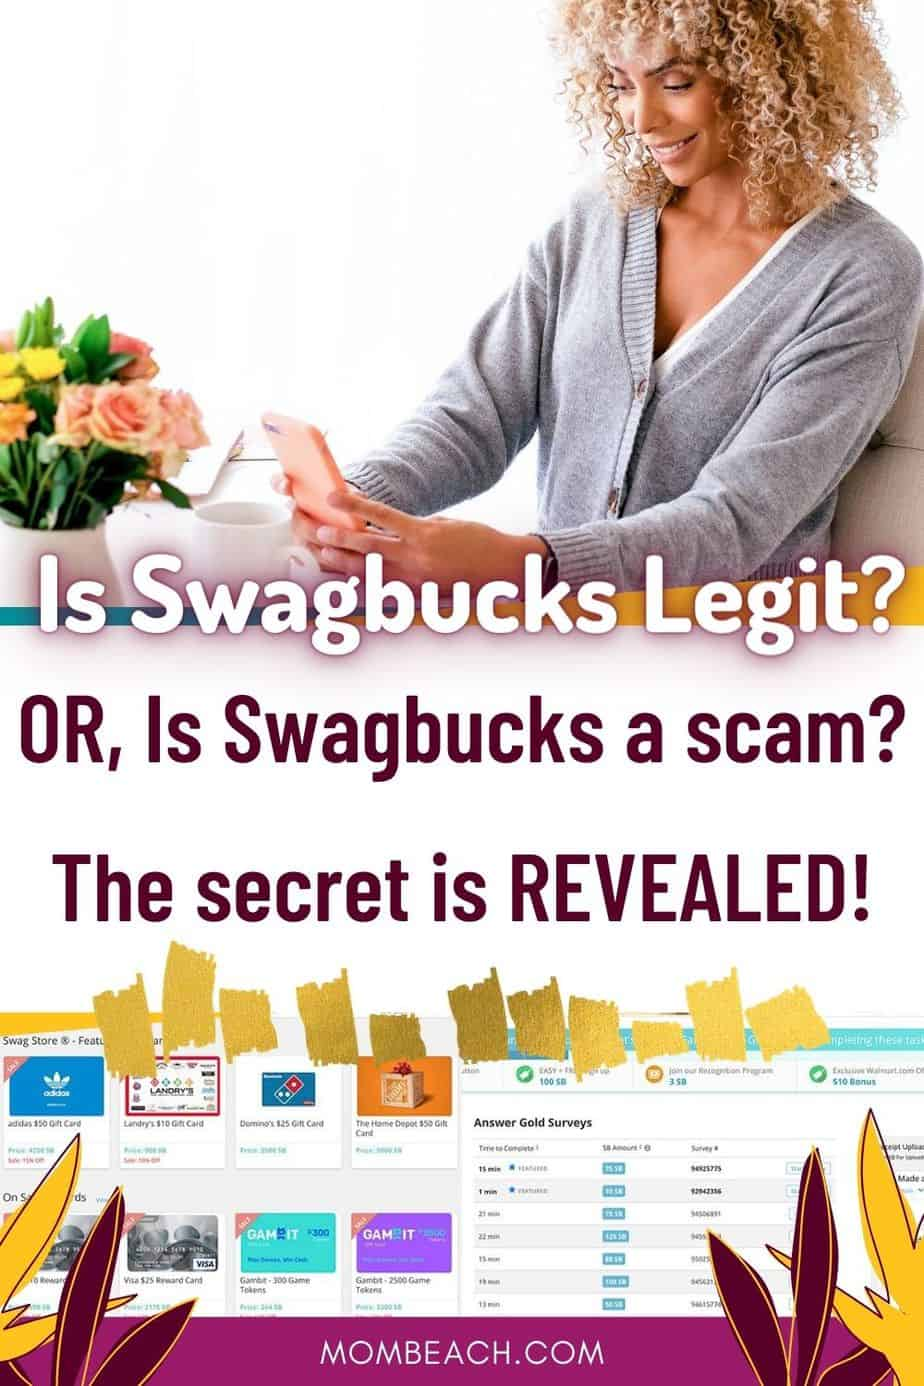 Is Swagbucks legit or a scam? We discuss this in today's awesome post in detail. Swagbucks is for beginners and there are lots of hacks to get free gift cards. We share tips on how to use Swagbucks and how to make money fast. #isswagbuckslegit #swagbucks #paidsurveys #swagbuckstips #howtomakemoneyonswagbucks